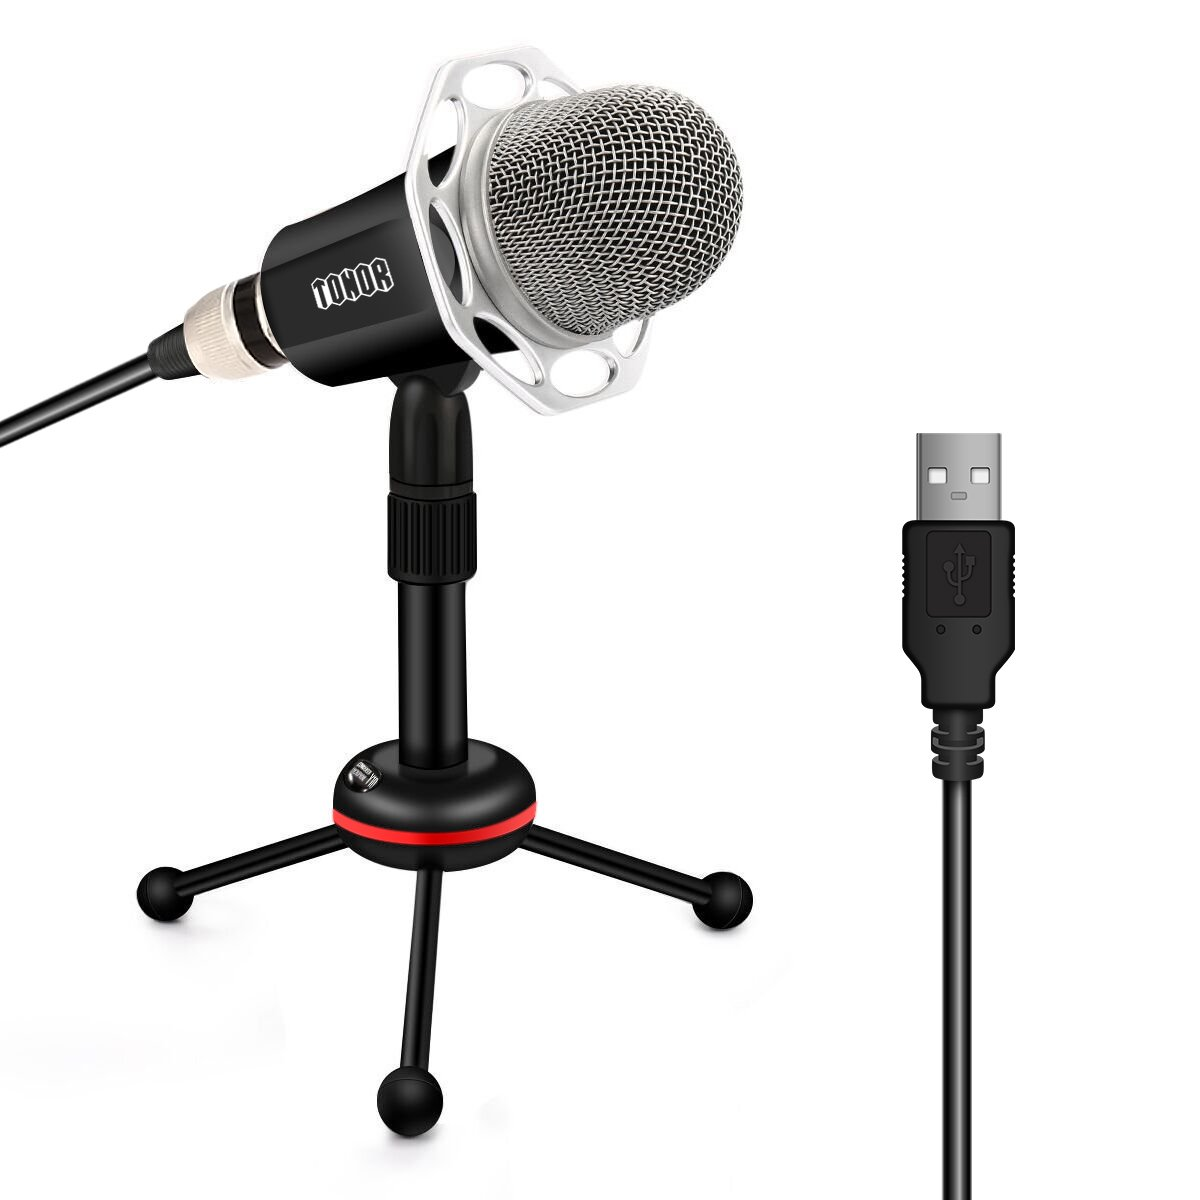 TONOR Microphone PC 3.5mm, Computer Condenser Studio Mic Plug & Play with Tripod Stand for Chatting/Skype/Youtube/Recording/Gaming/Podcasting for Macintosh Laptop Desktop Windows Computer